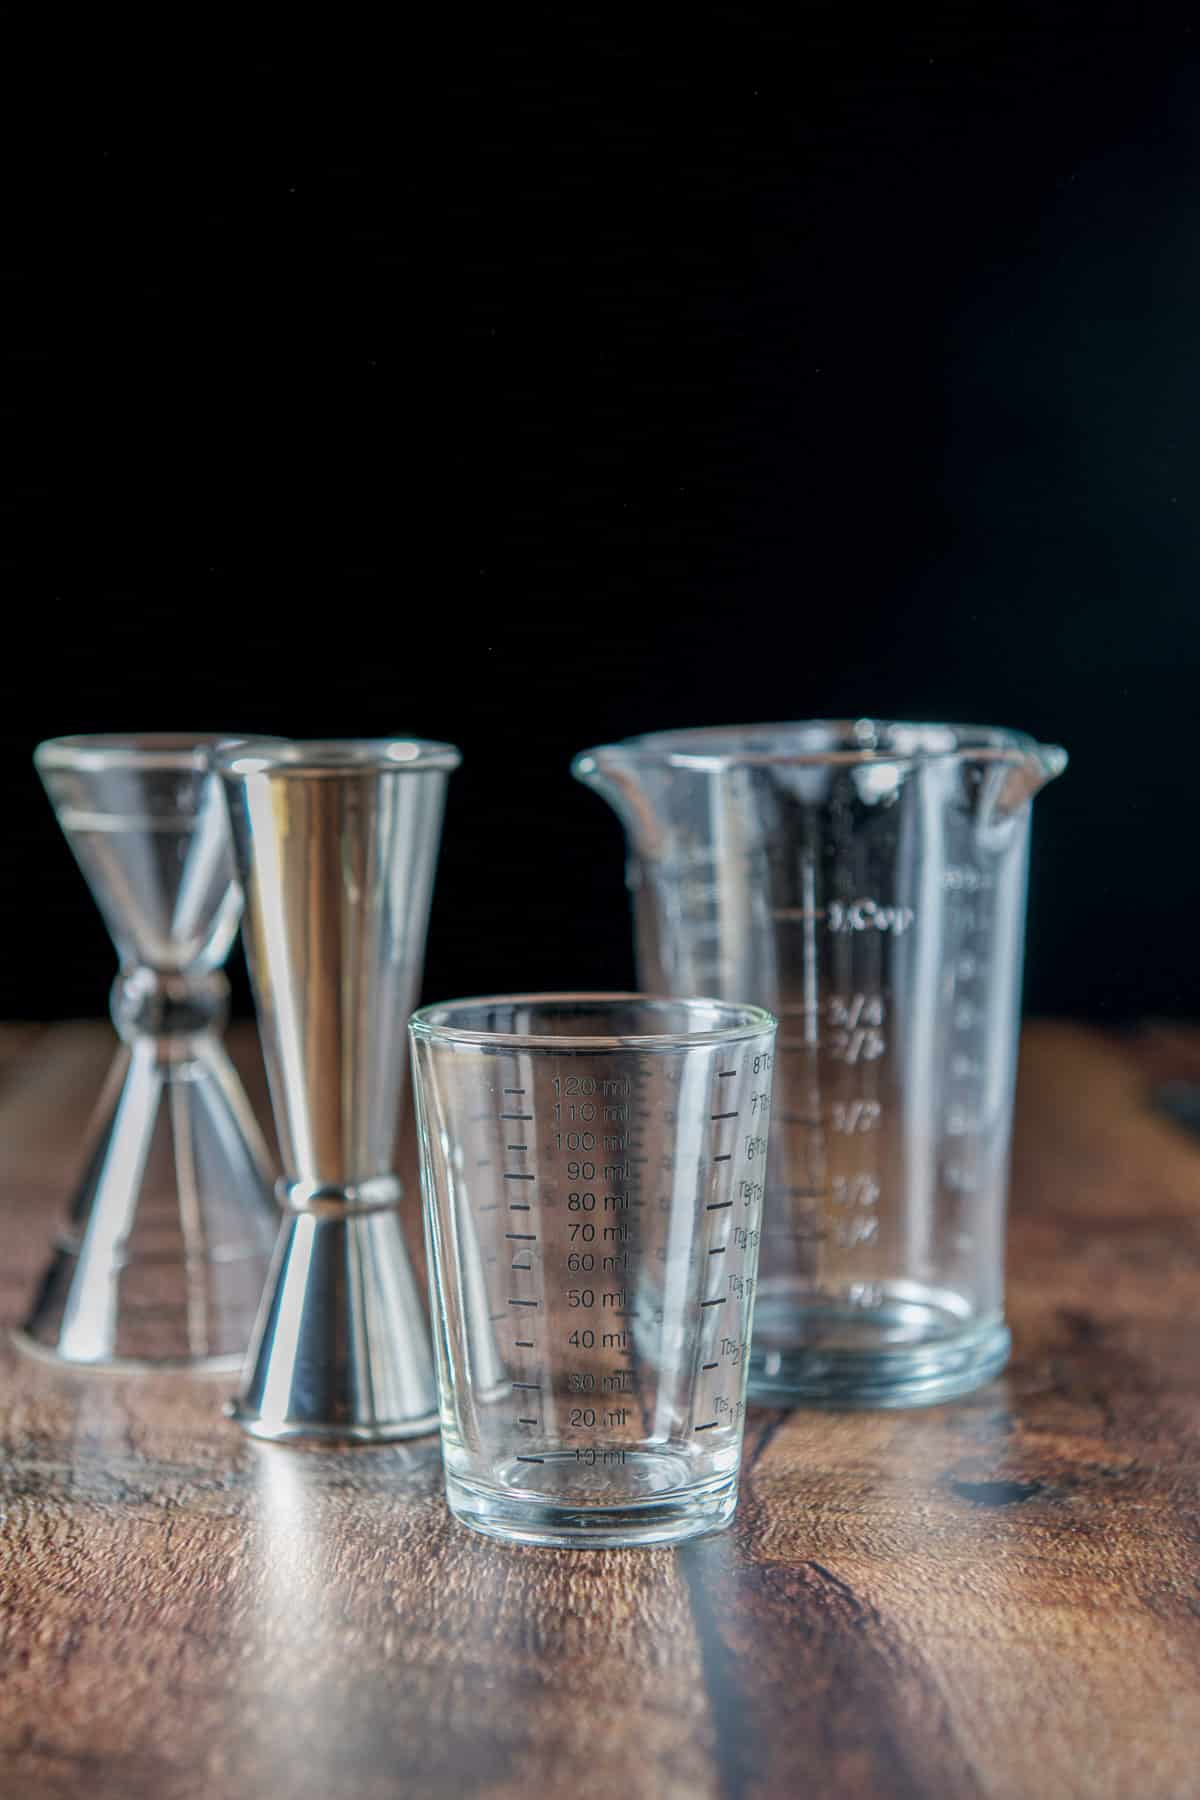 Different jiggers and measuring glasses